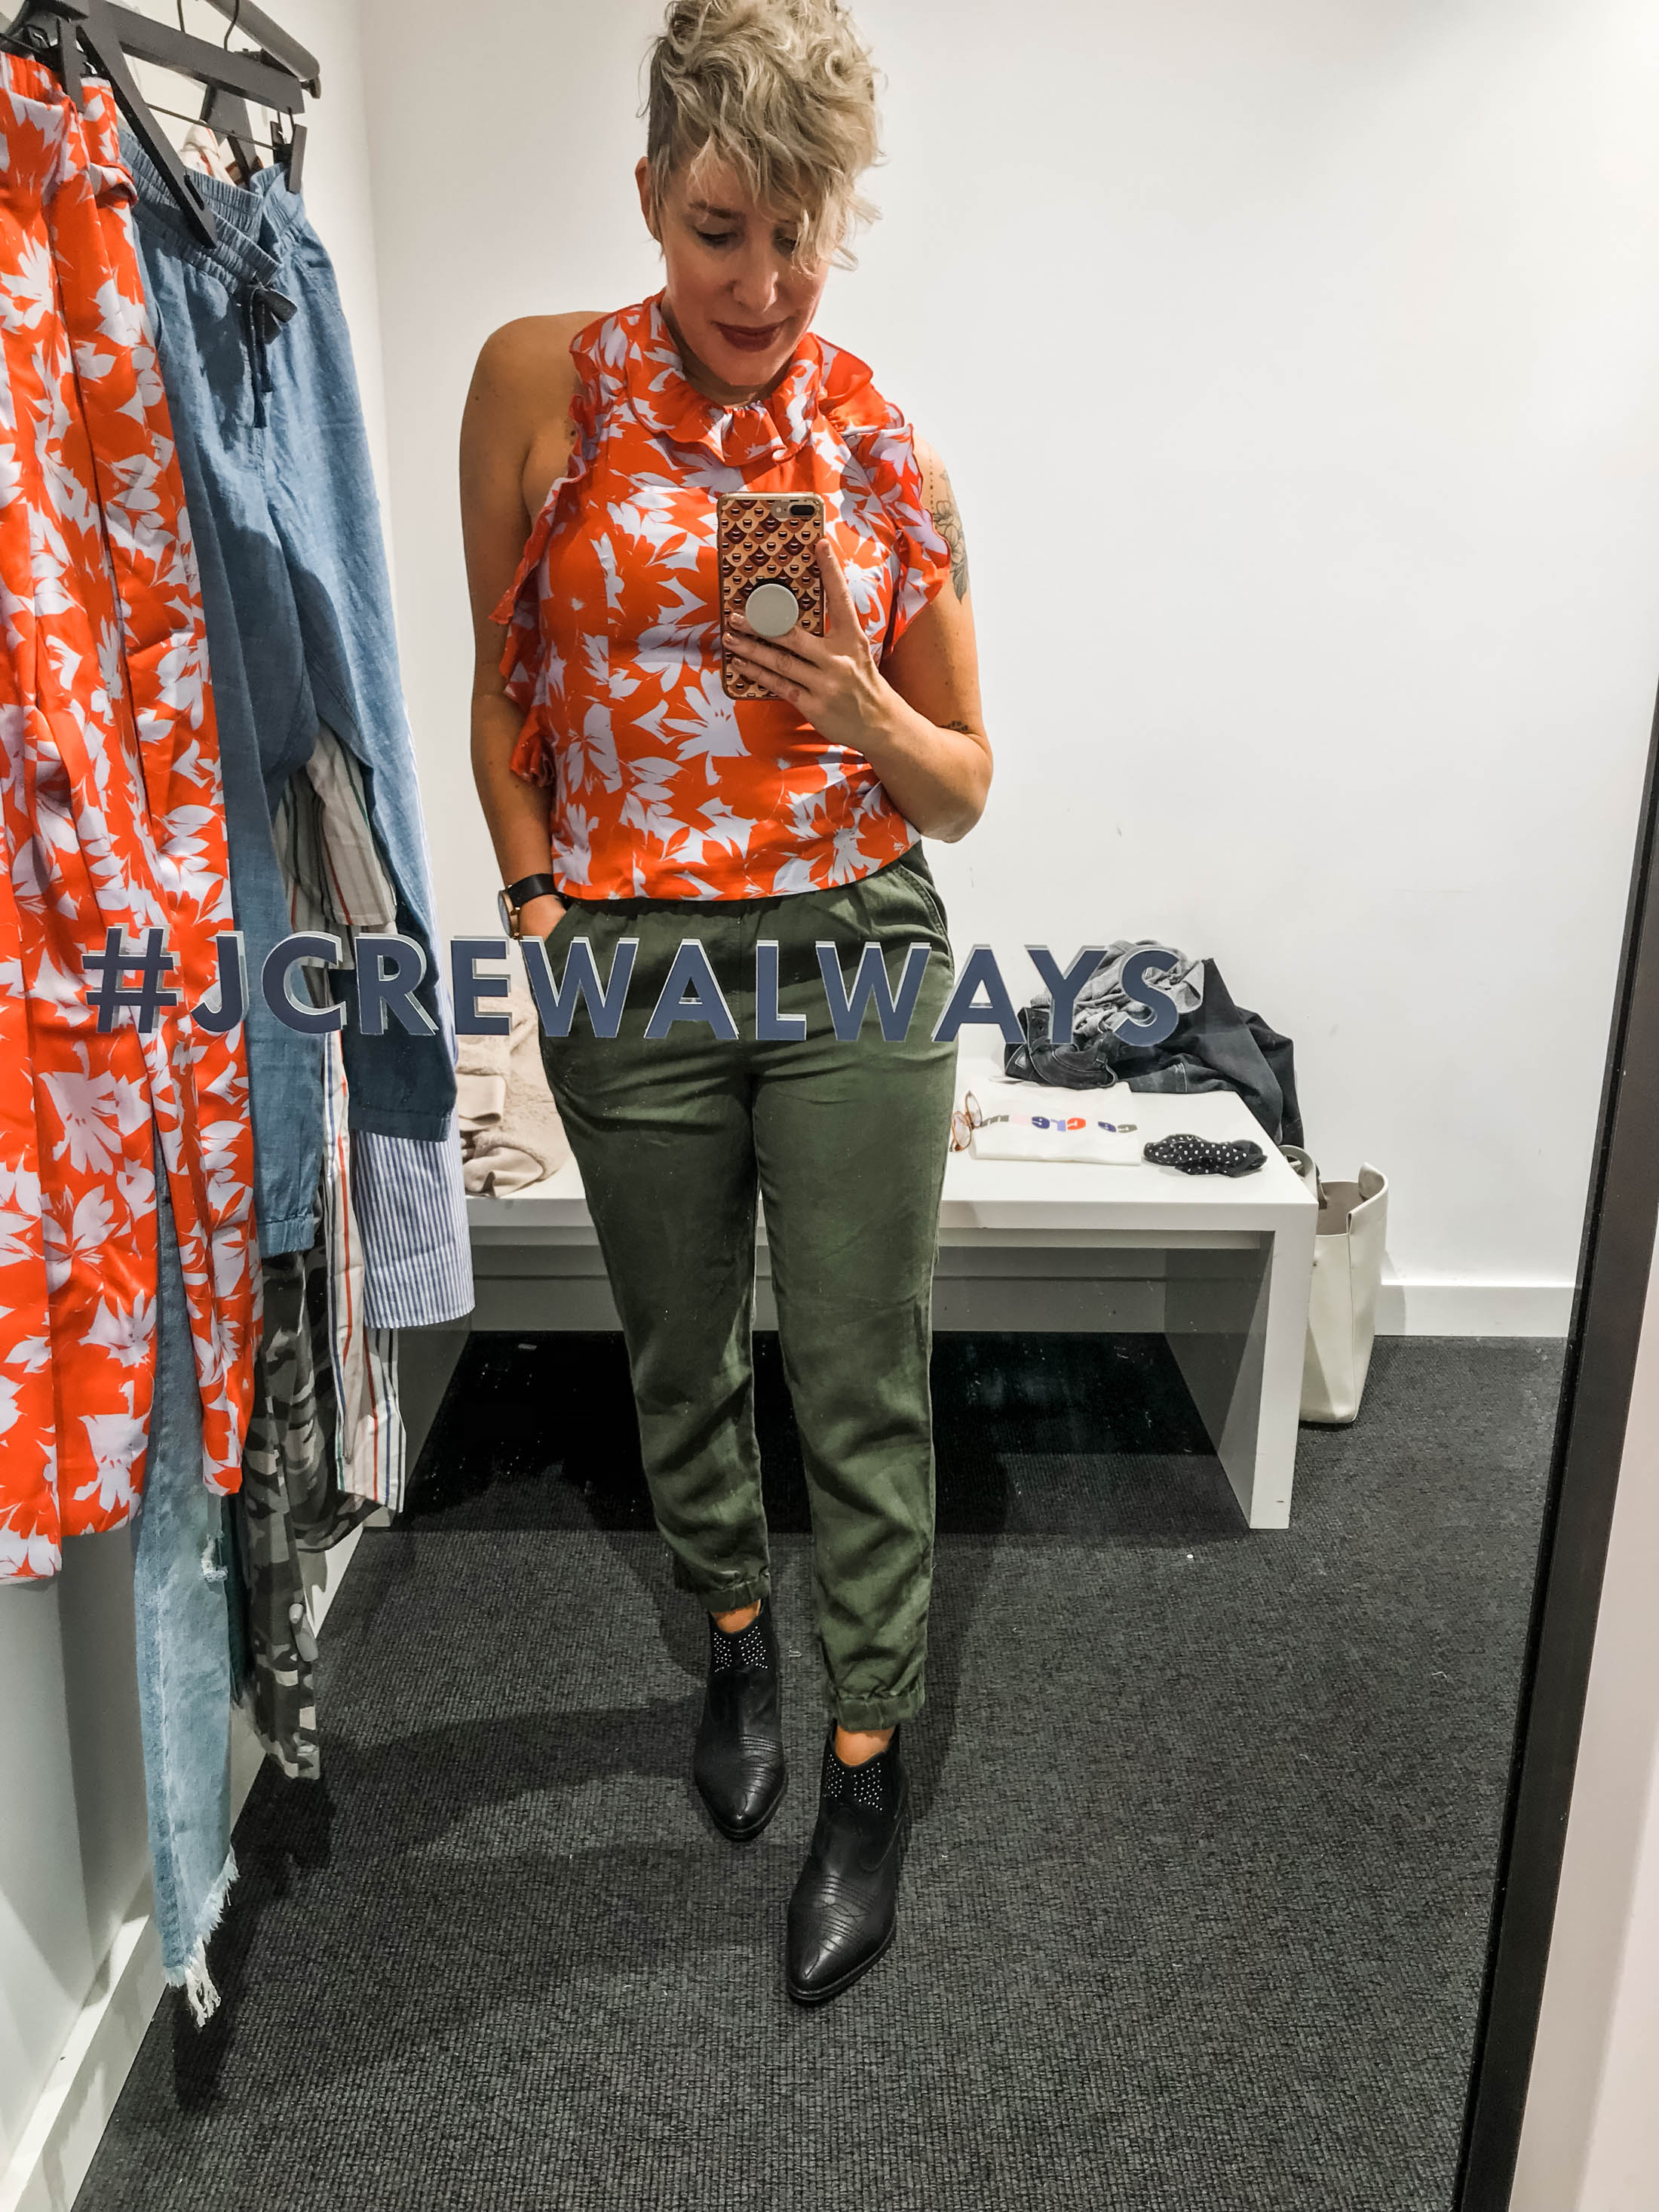 Light wash jeans, camo pants, matching sets & linen joggers...J.Crew is killig it right now. Check out our little try-on sesh for must-have outfit pieces.